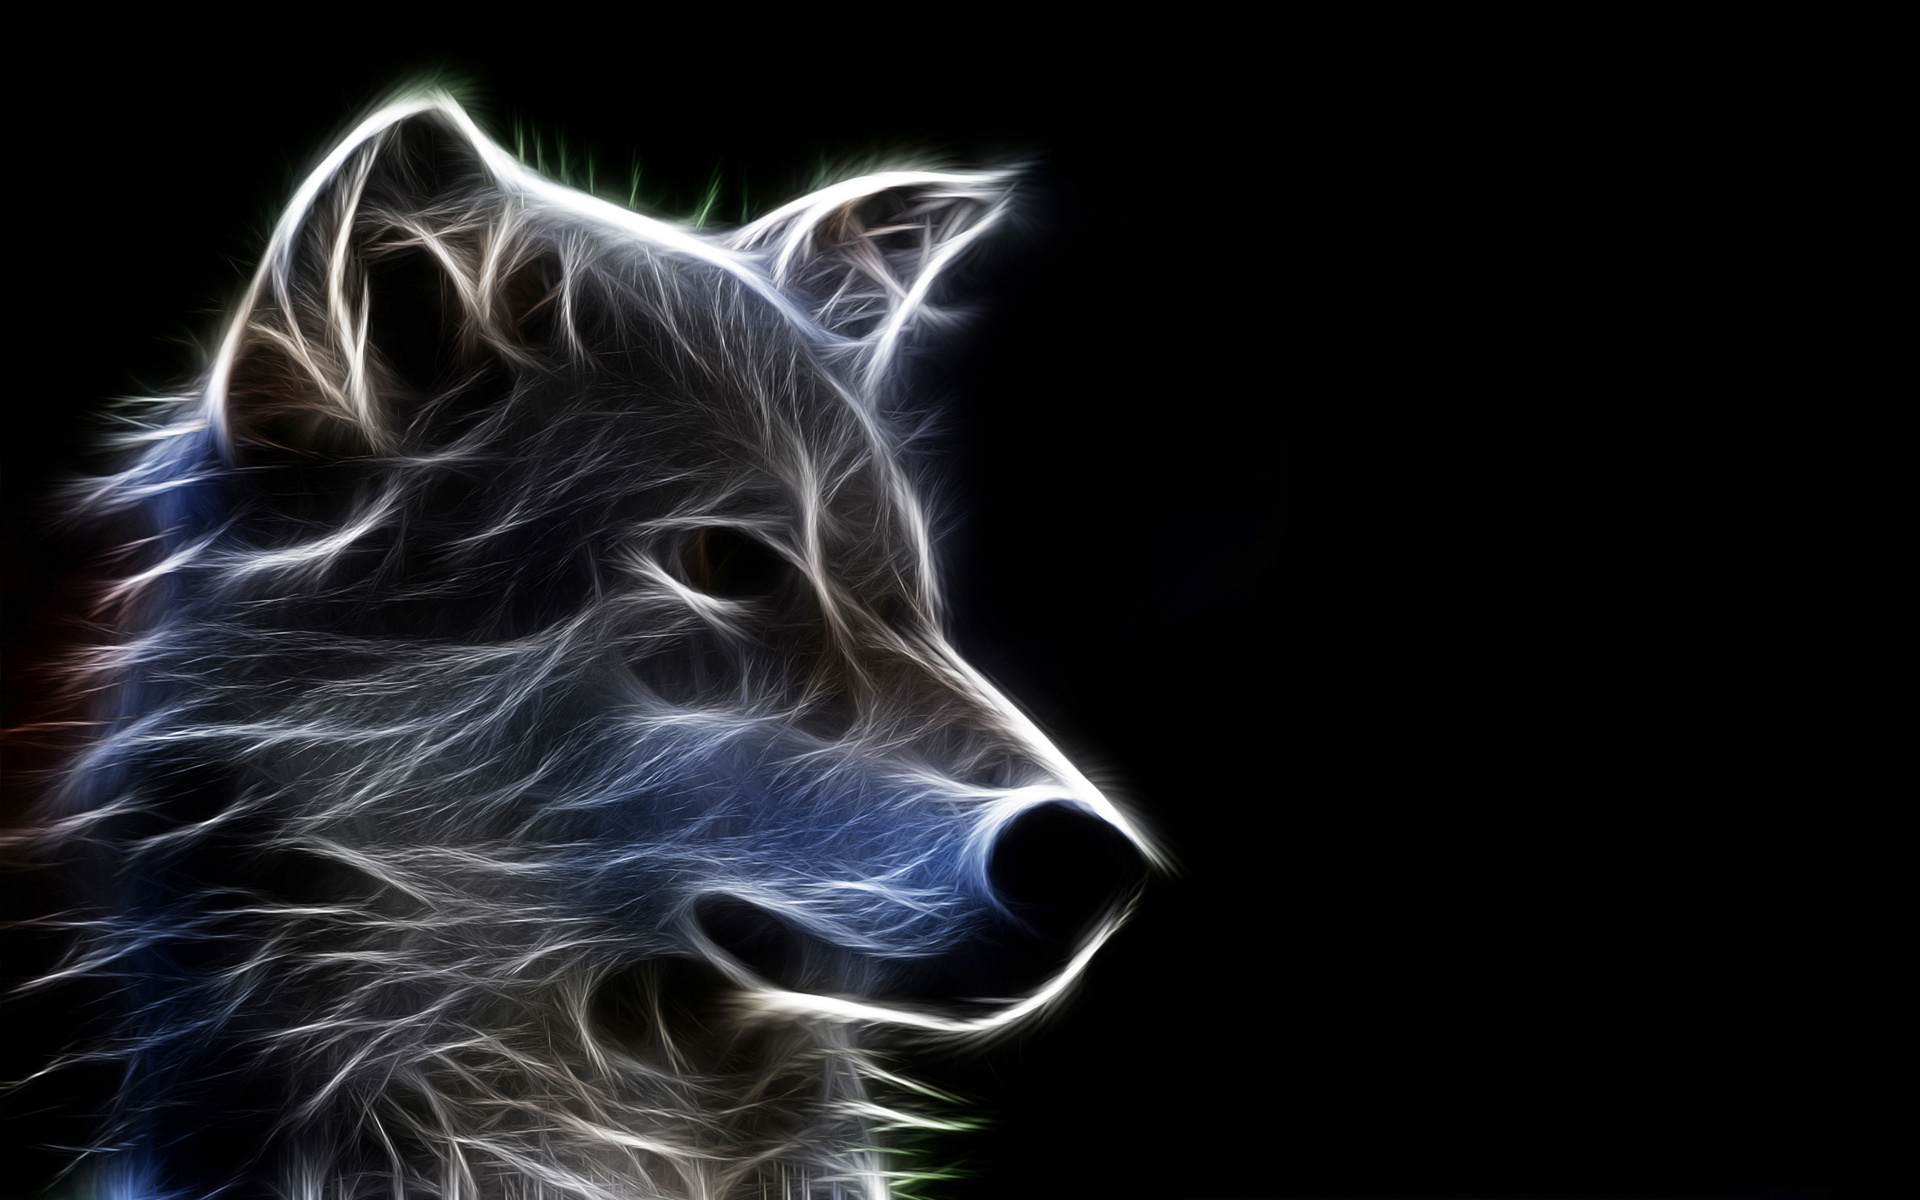 3d wallpapers hd animals - photo #10